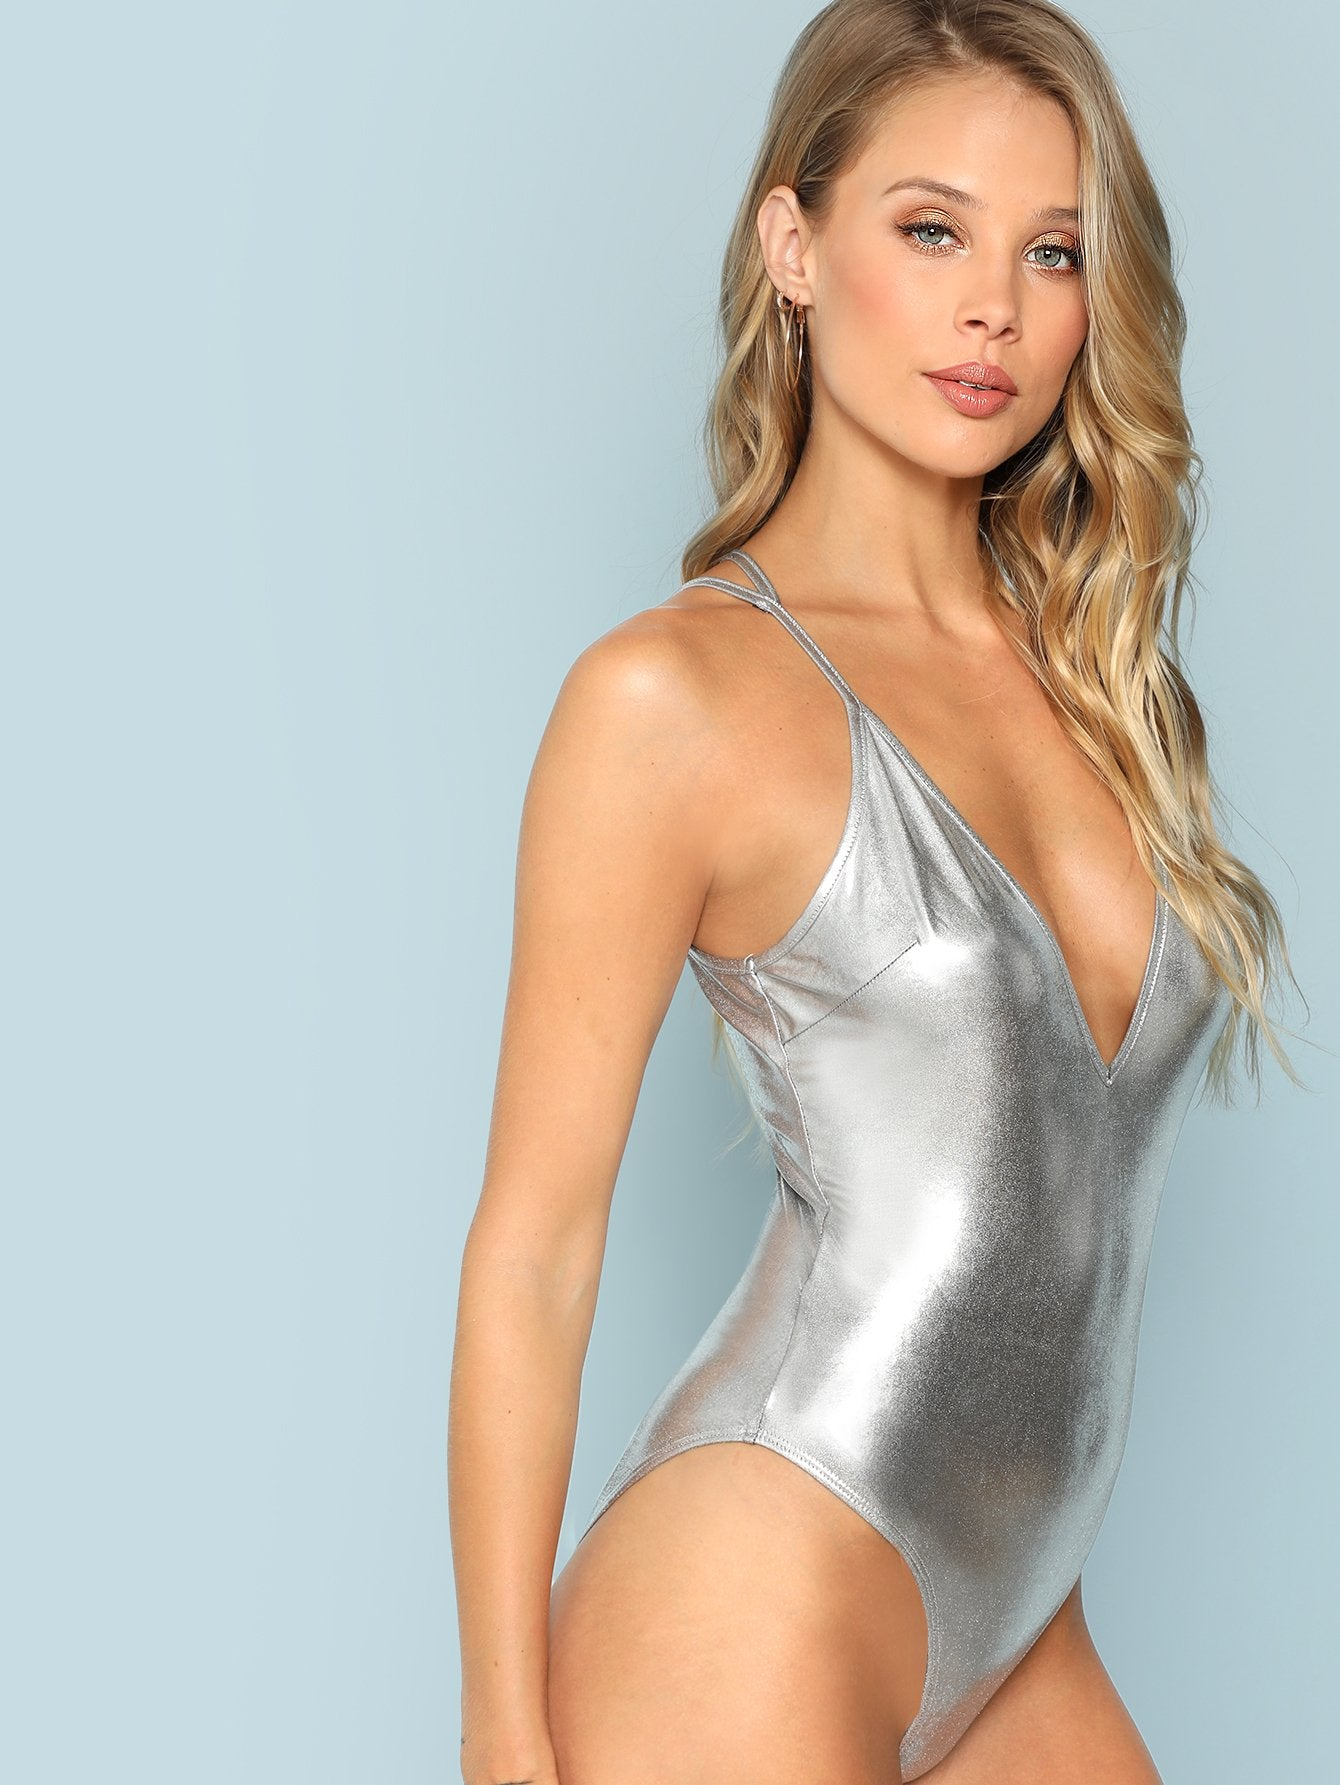 febef47cb920 Bodysuits - Women s Silver Plunge Neck Cami Bodysuit at Fashiontage ...